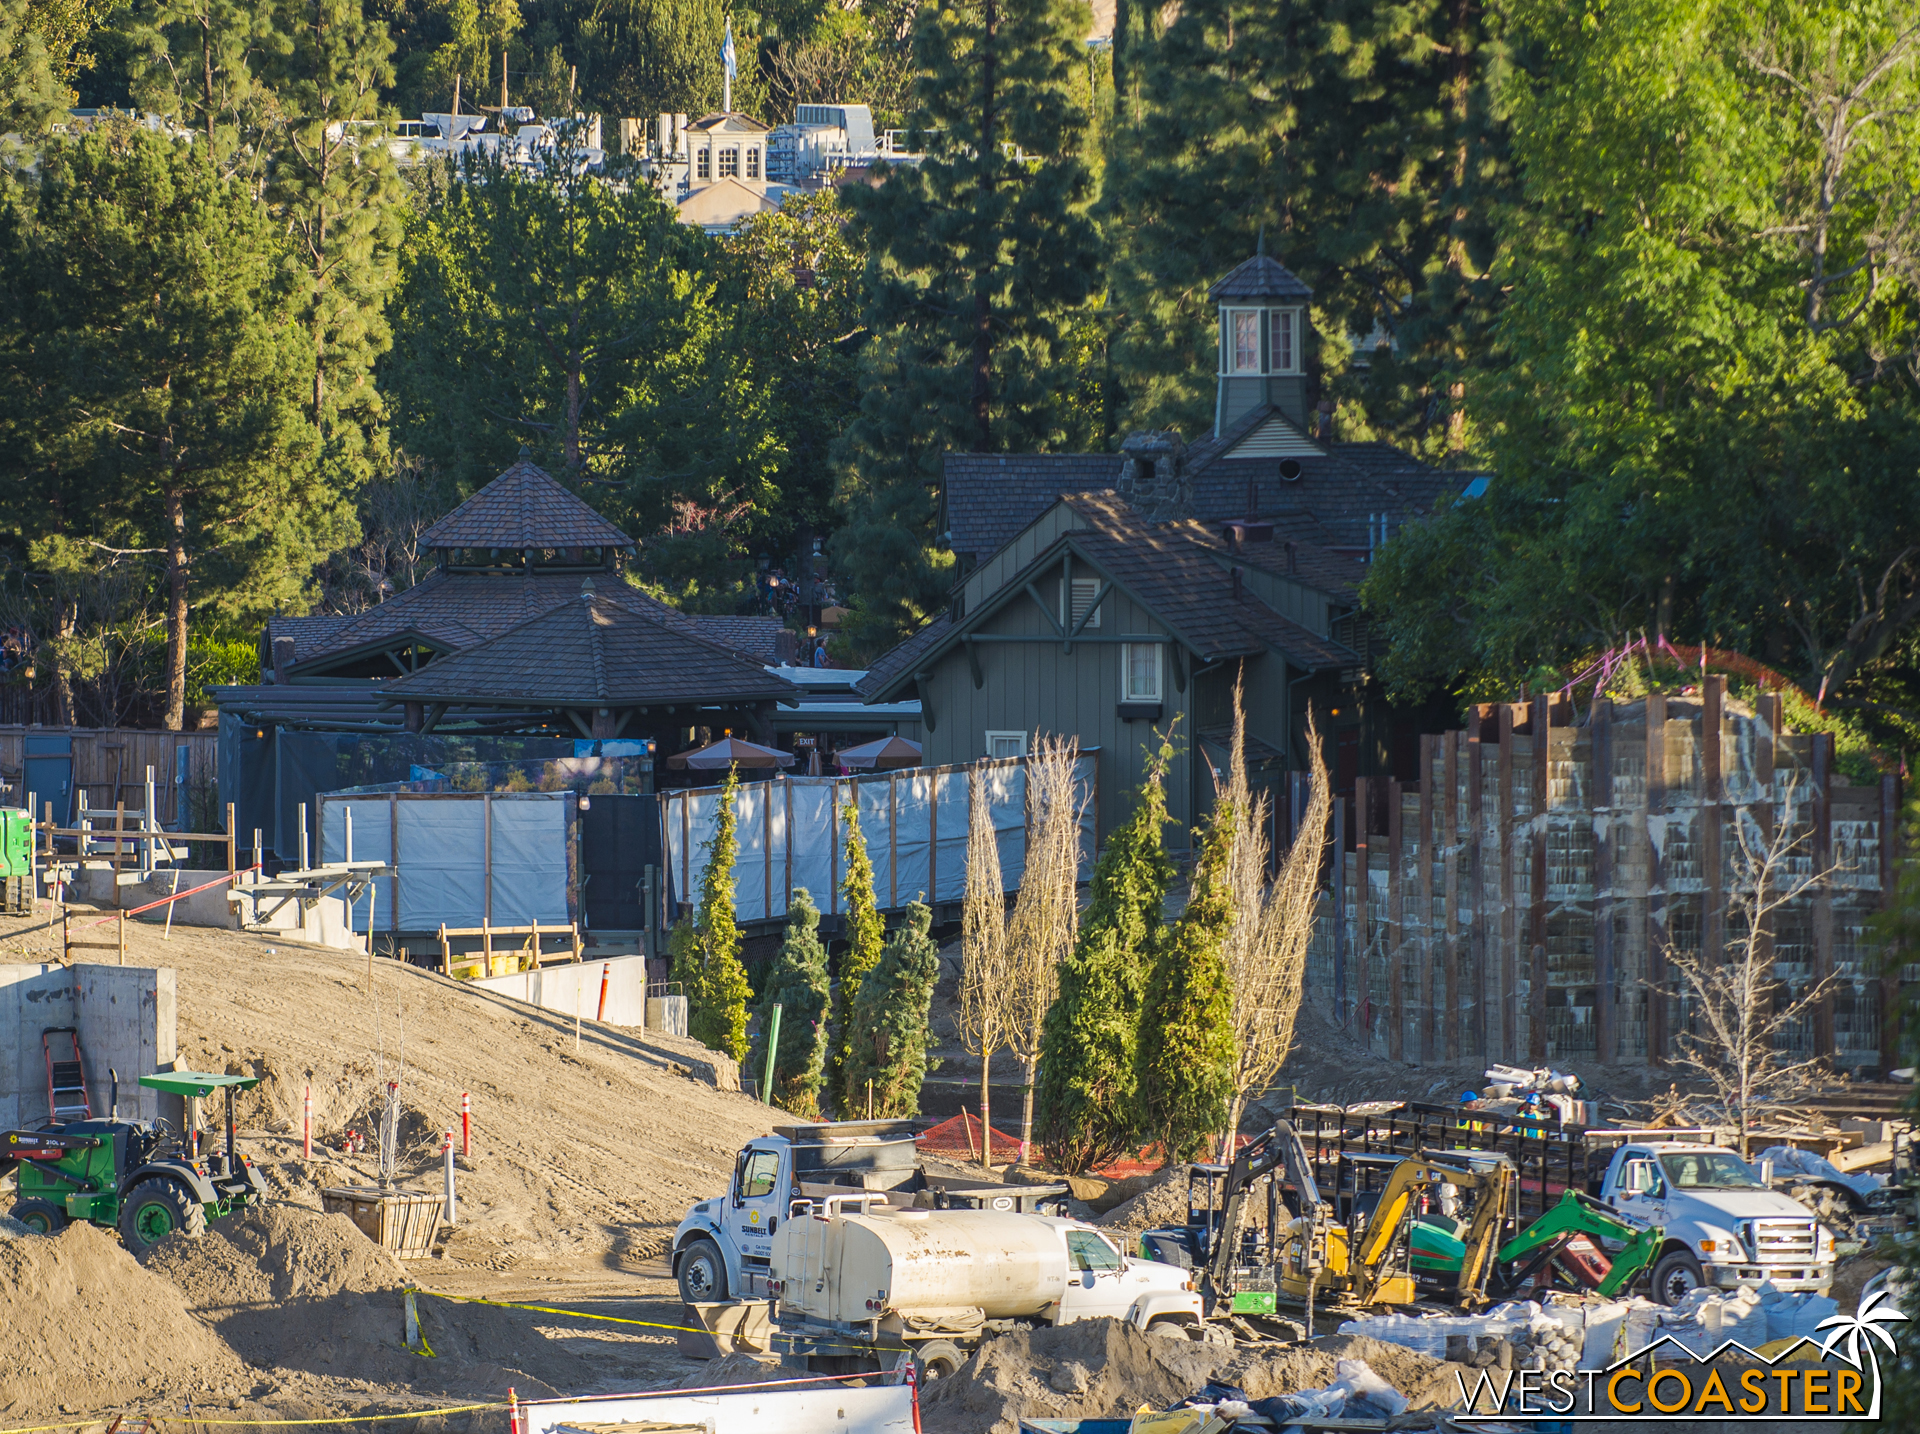 When it reopens, the Disneyland Railroad will still be reappearing just to the right of the Hungry Bear Restaurant building and left of the berm on the right that has been cut and shored up.